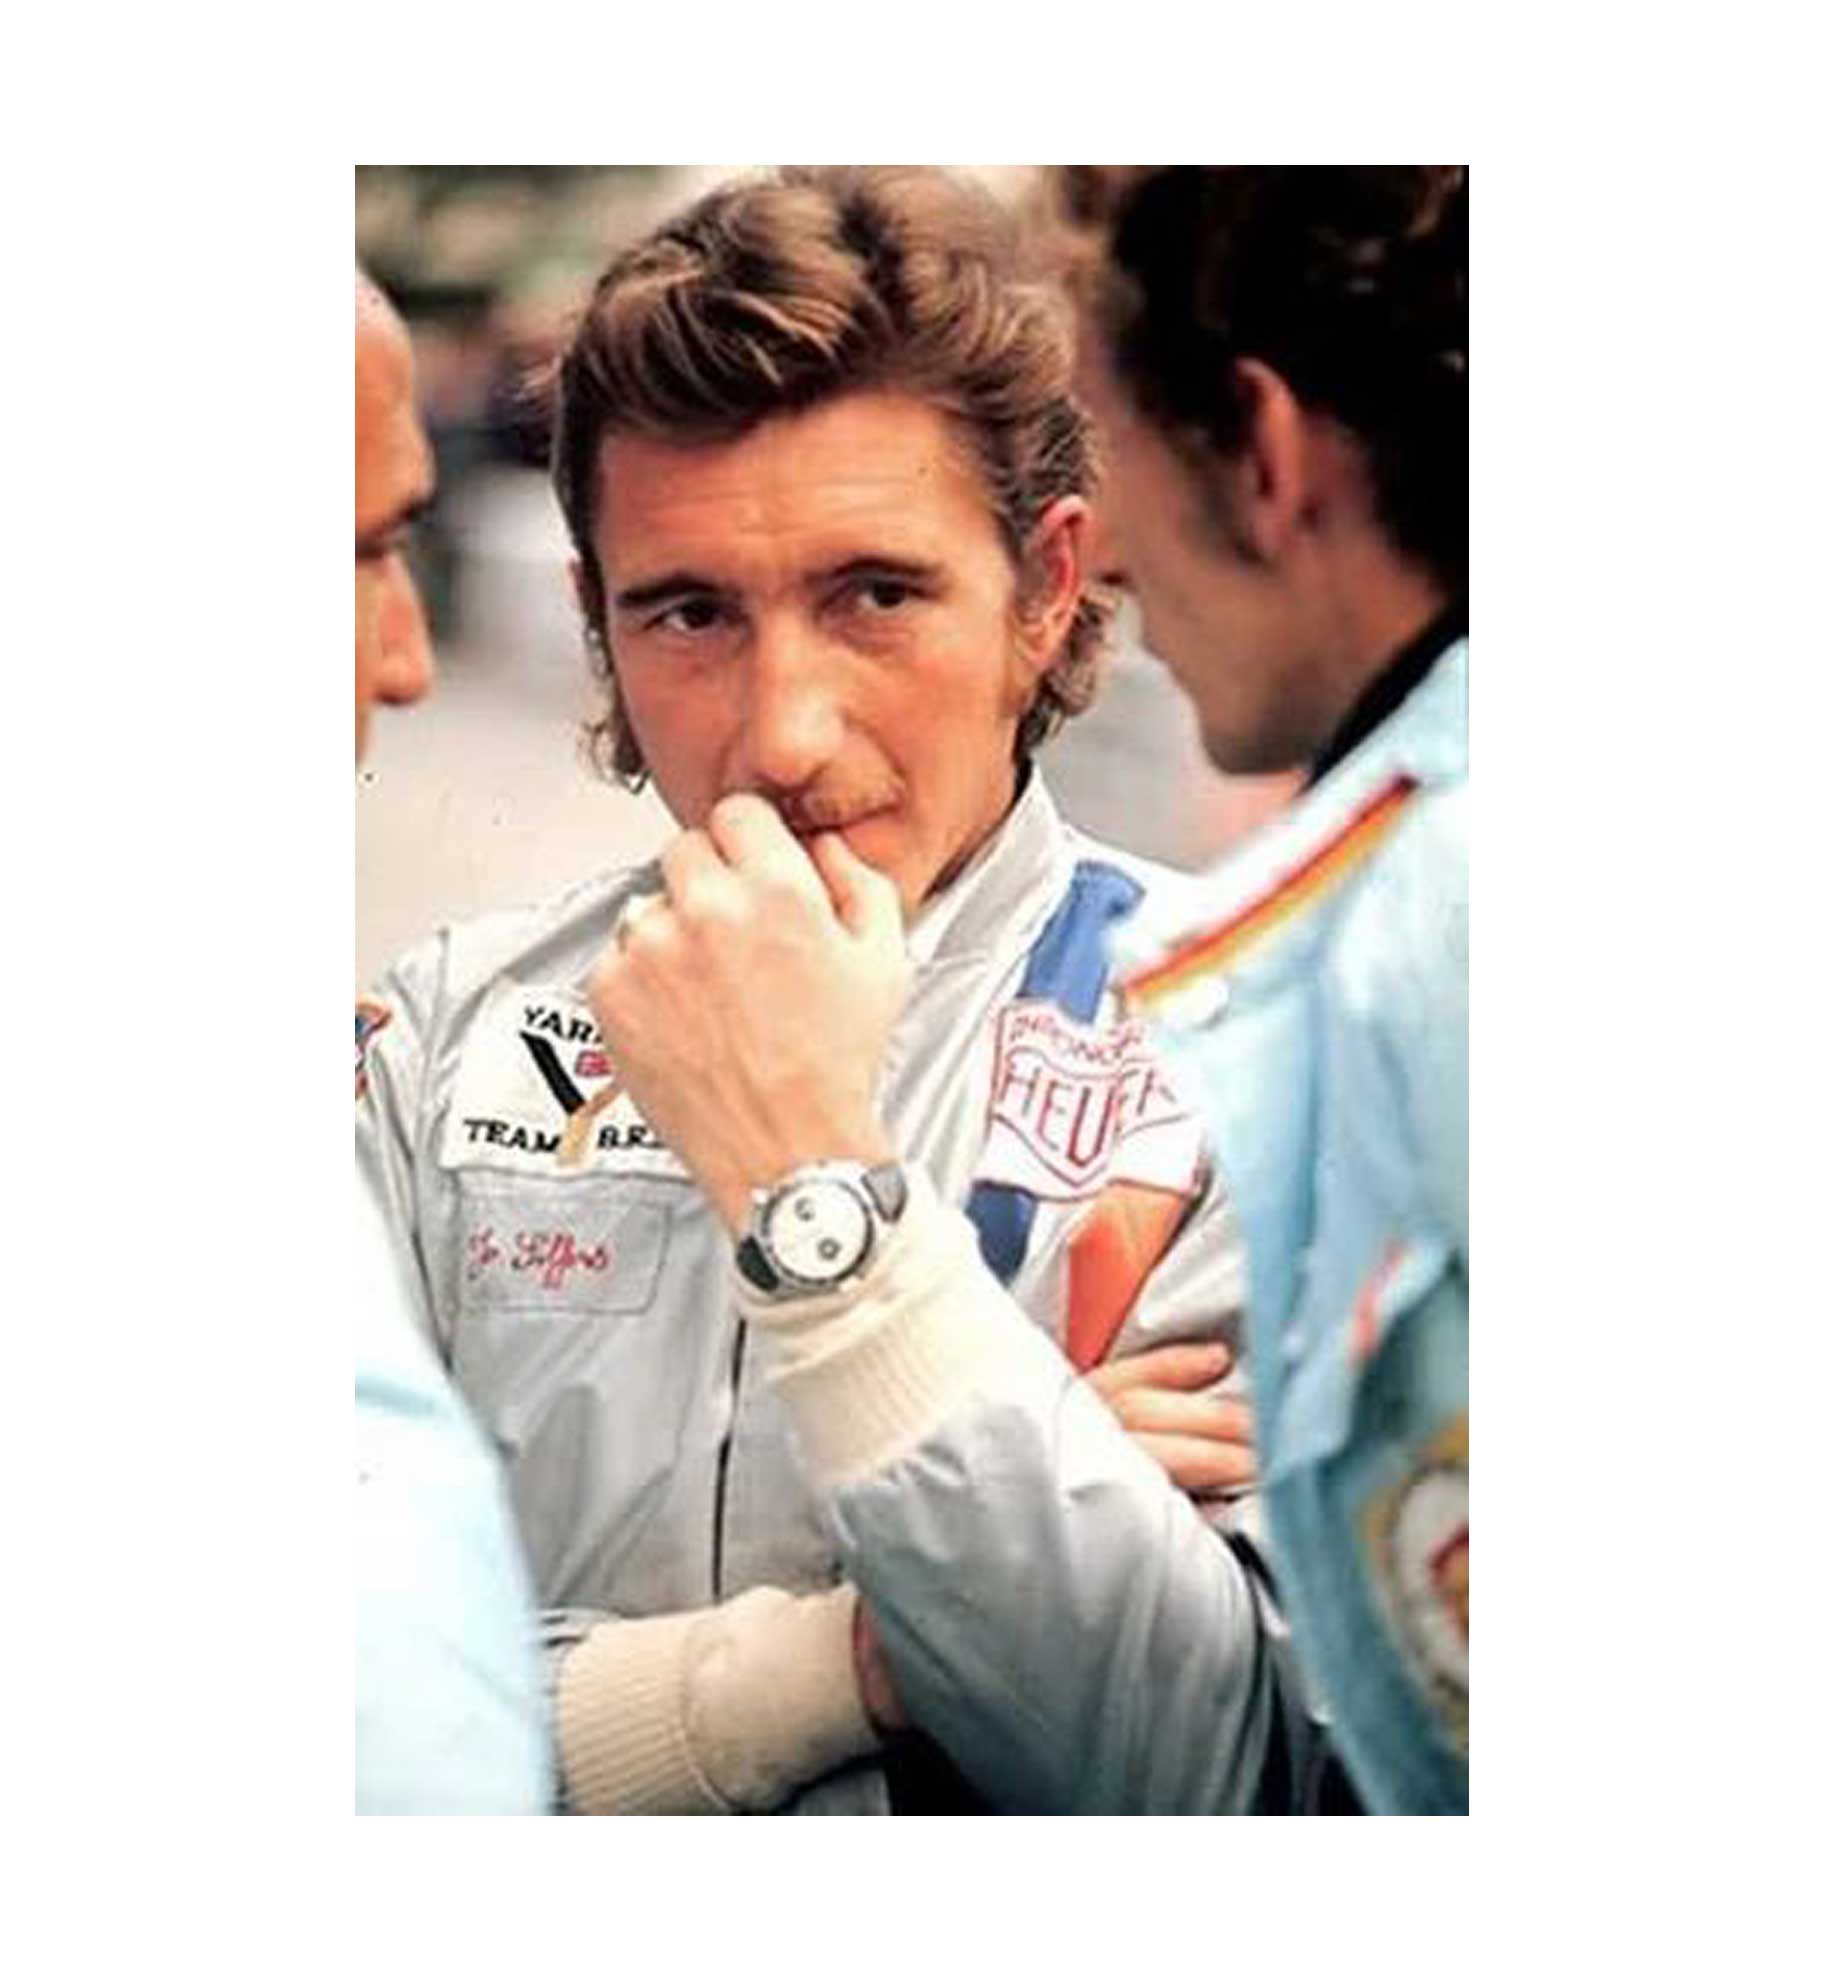 """Swiss Formula I driver Jo Siffert with the 1163 T """"Jo Siffert"""" on his wrist in clear view (Image: craftandtailored.com)"""